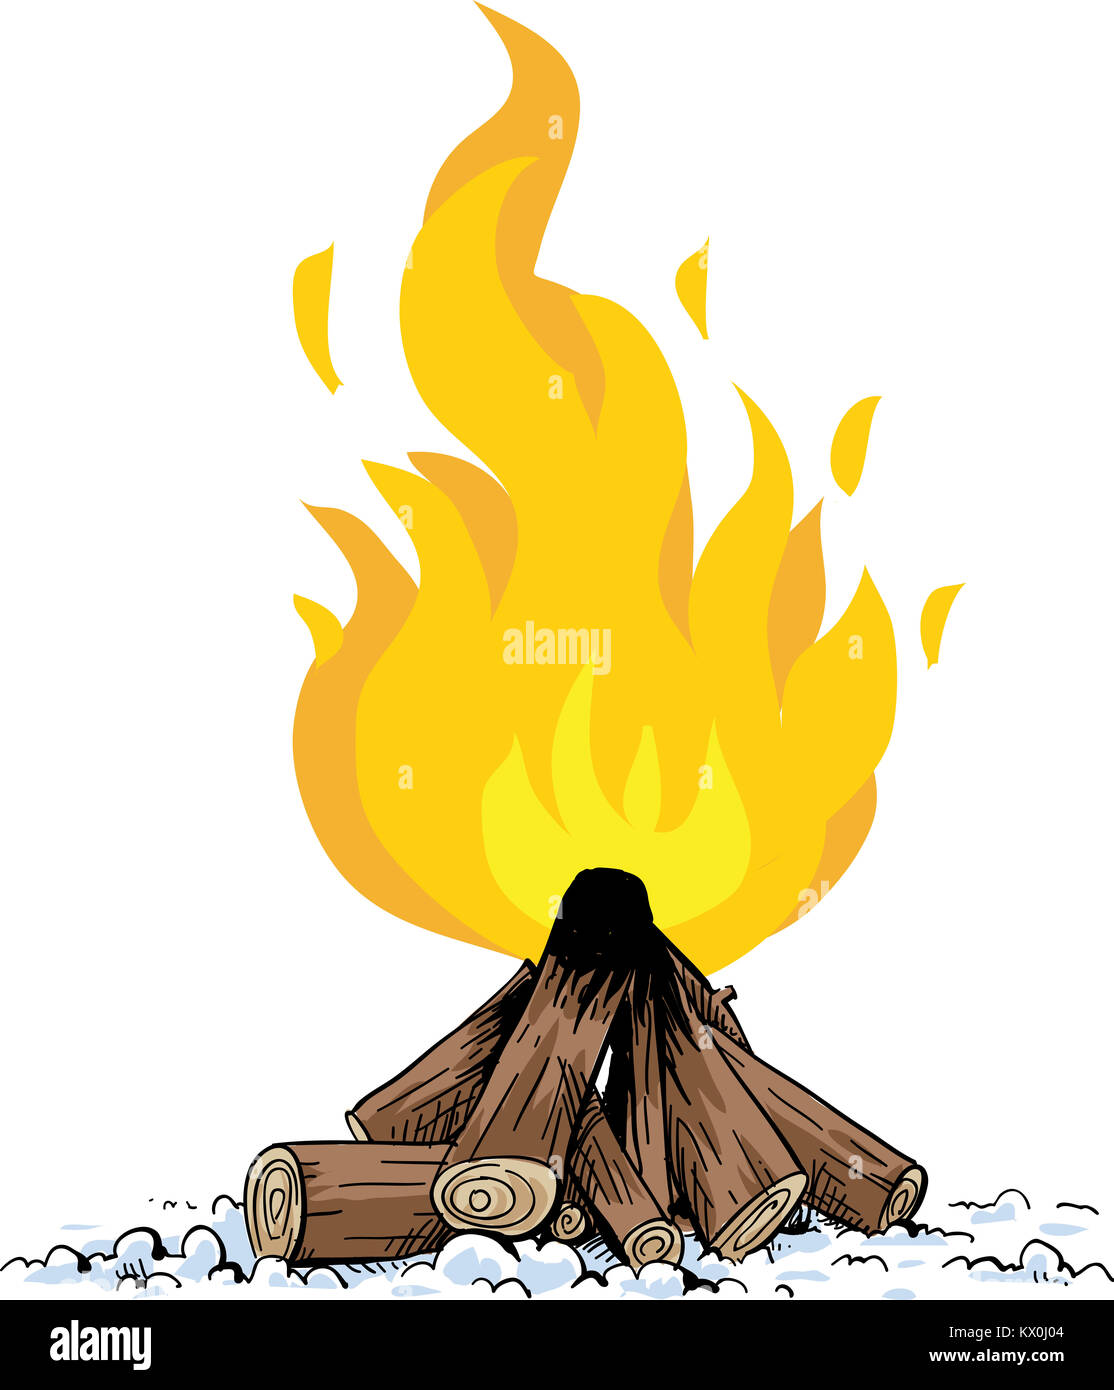 un dessin de tas de bois alimentant un feu bain de camp banque d 39 images photo stock 170888484. Black Bedroom Furniture Sets. Home Design Ideas